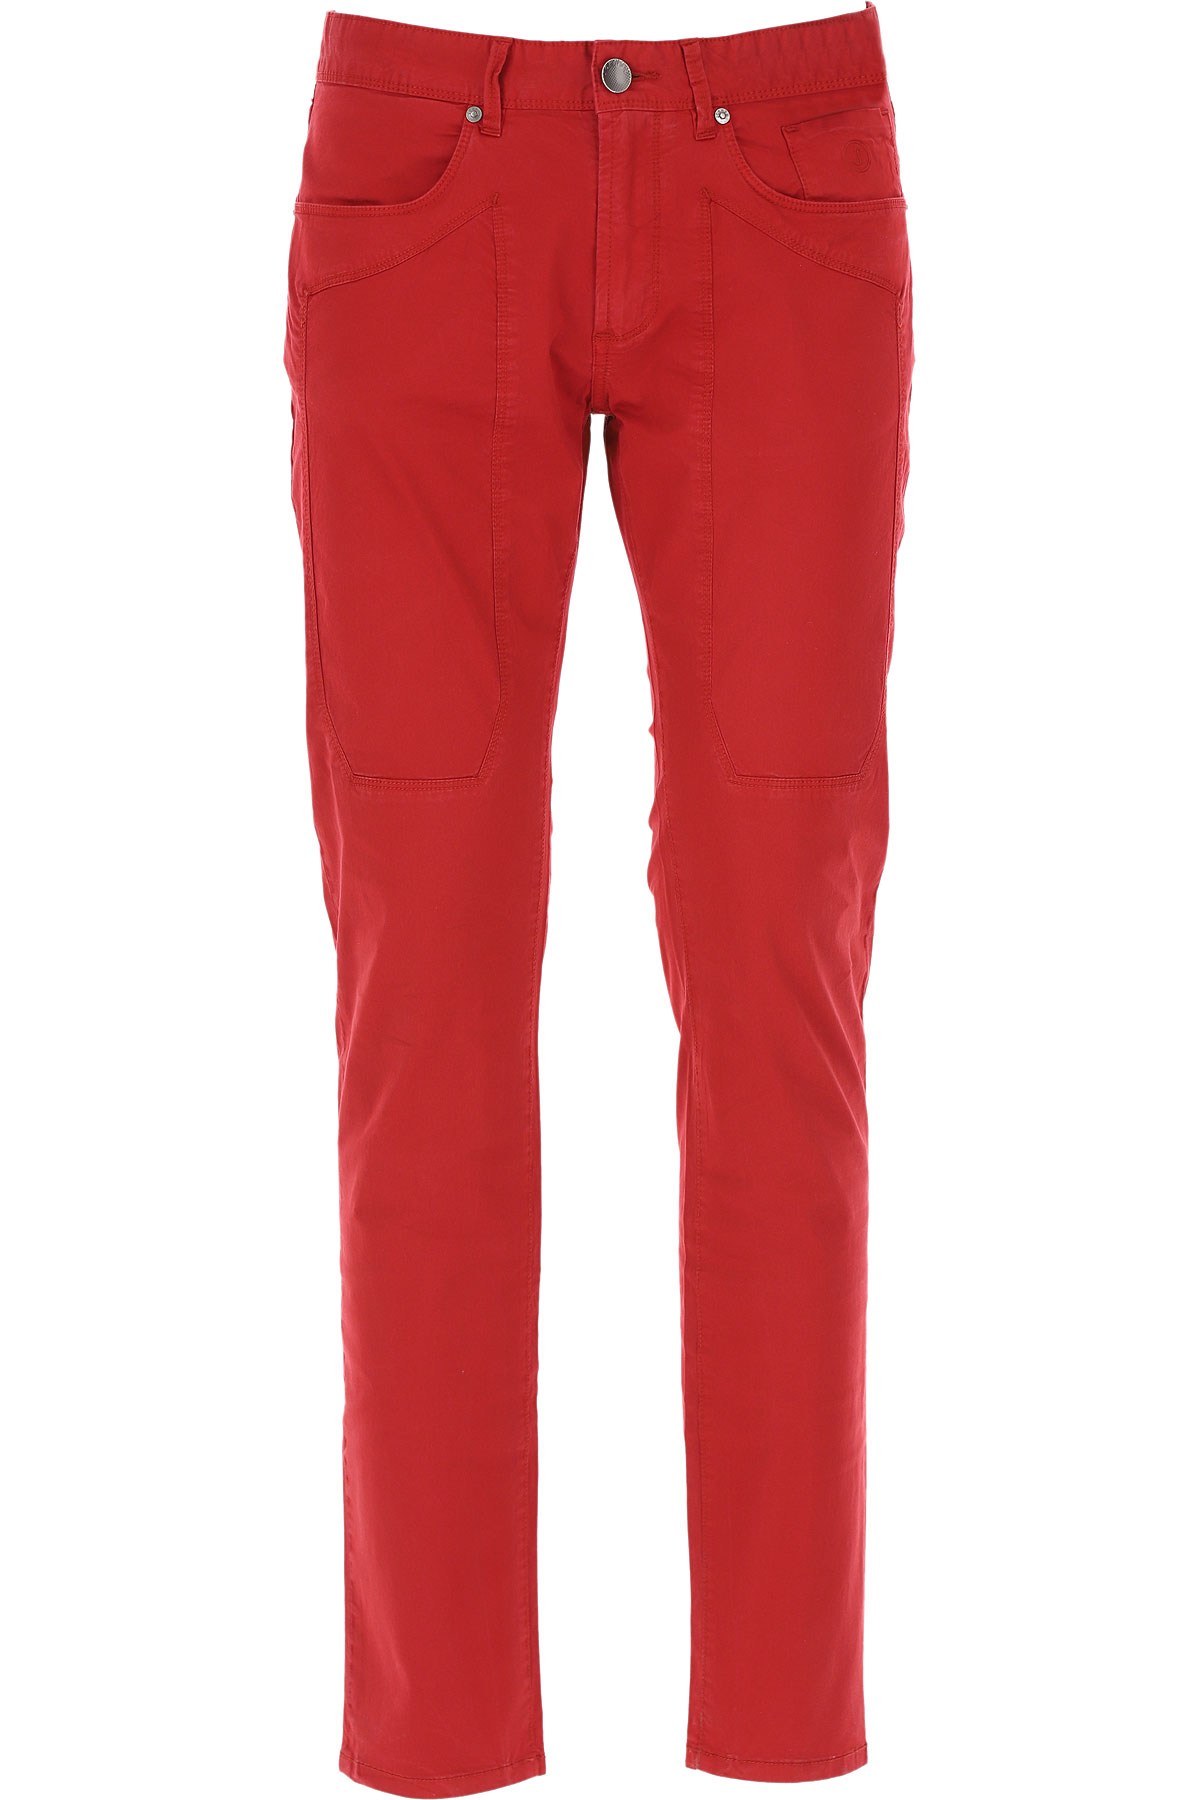 Jeckerson Pants for Men On Sale, Red, Cotton, 2019, 31 32 33 34 35 38